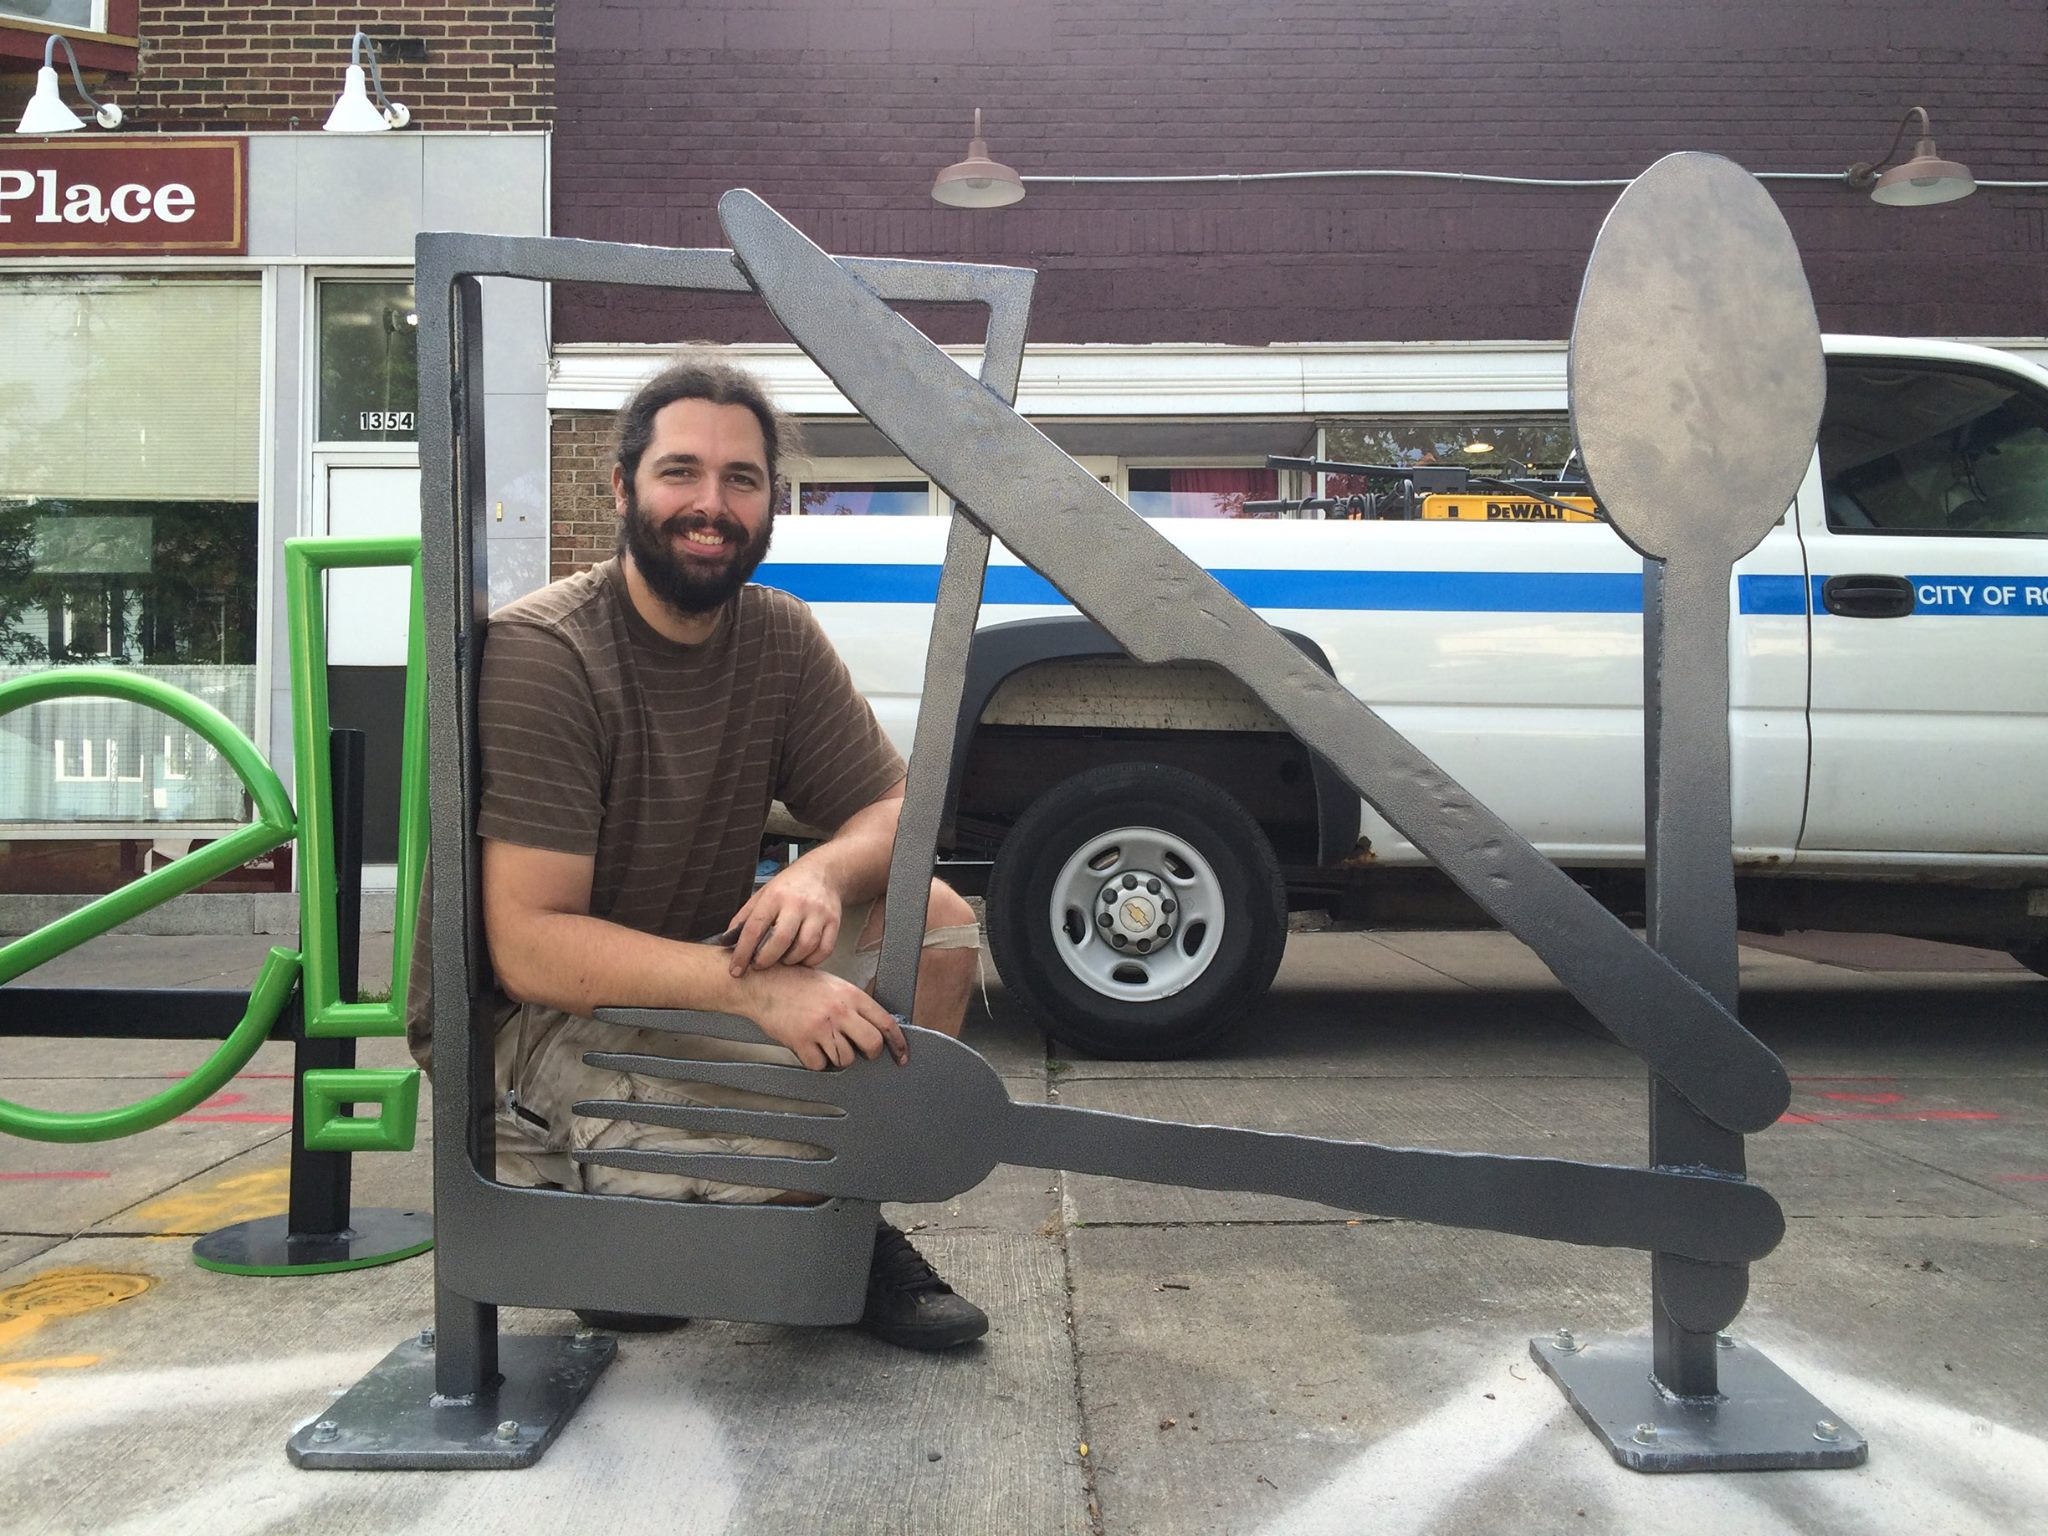 Jesse with his dinnerware bike rack. Located right outside James Brown's Place. Keep up with his other work on Instagram @skillhoarder and @cyrcraftcustoms.[IMAGE: NeighborWorks]